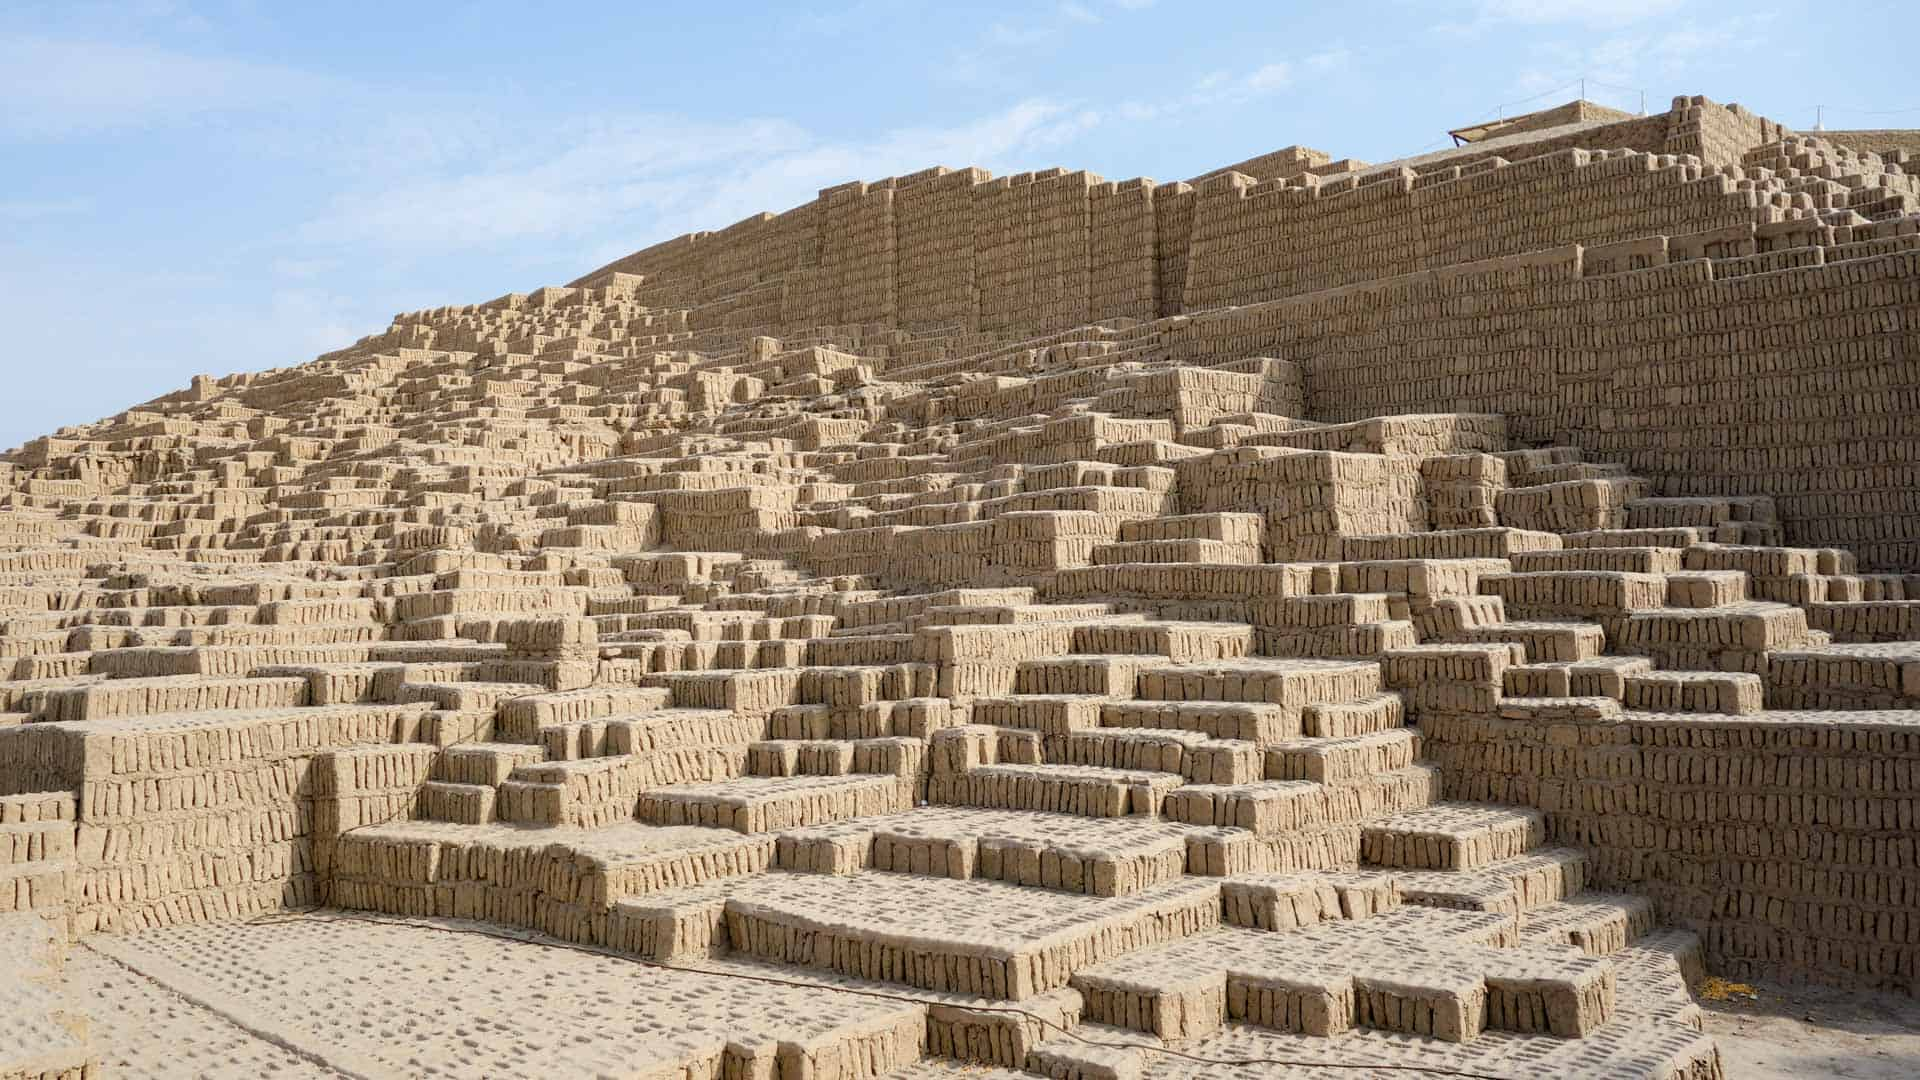 Ruins of Huaca Pucllana near Lima